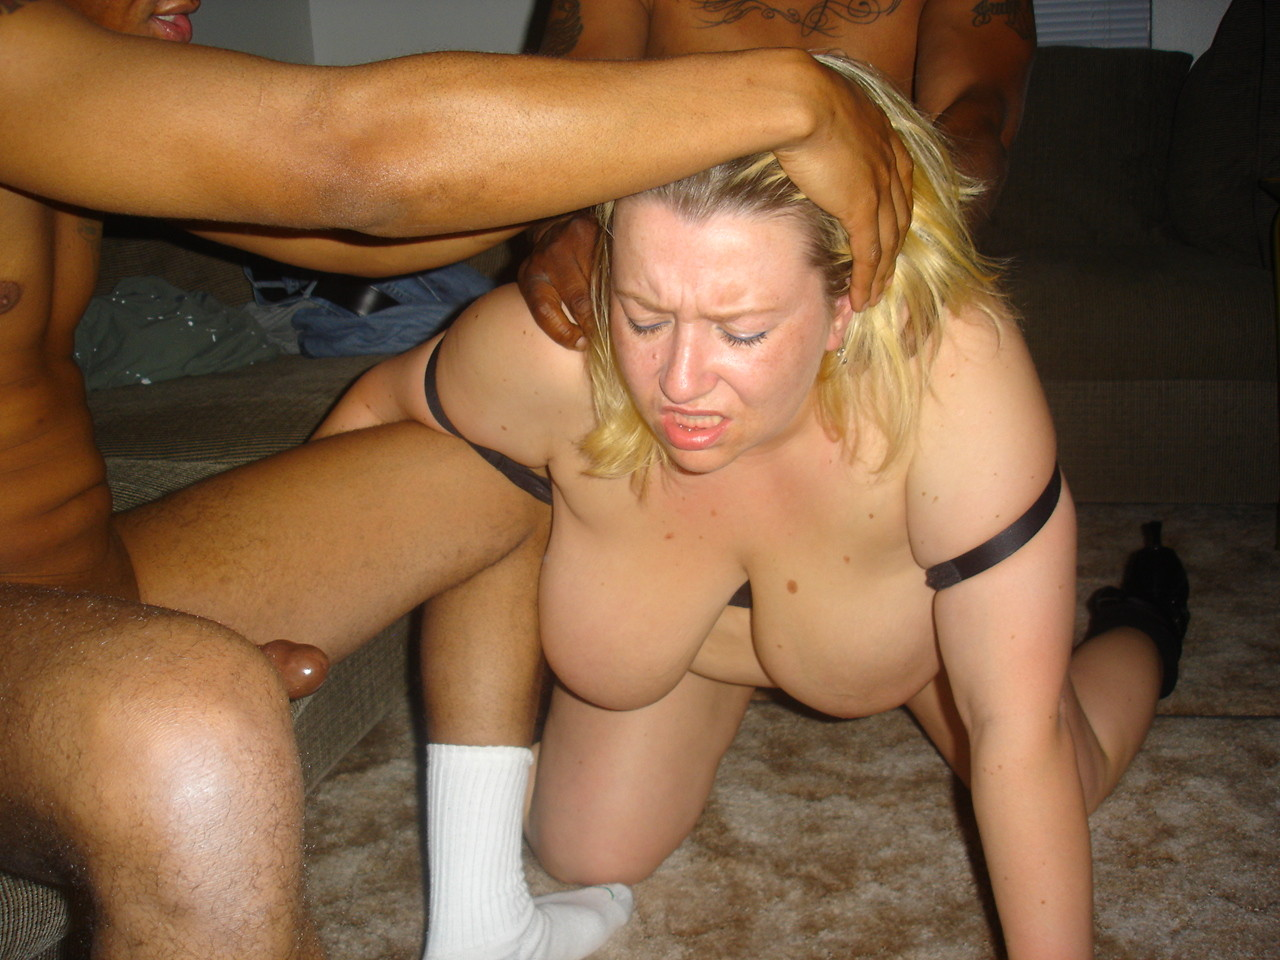 A great cuckold slaughter of a wife - 2 part 7